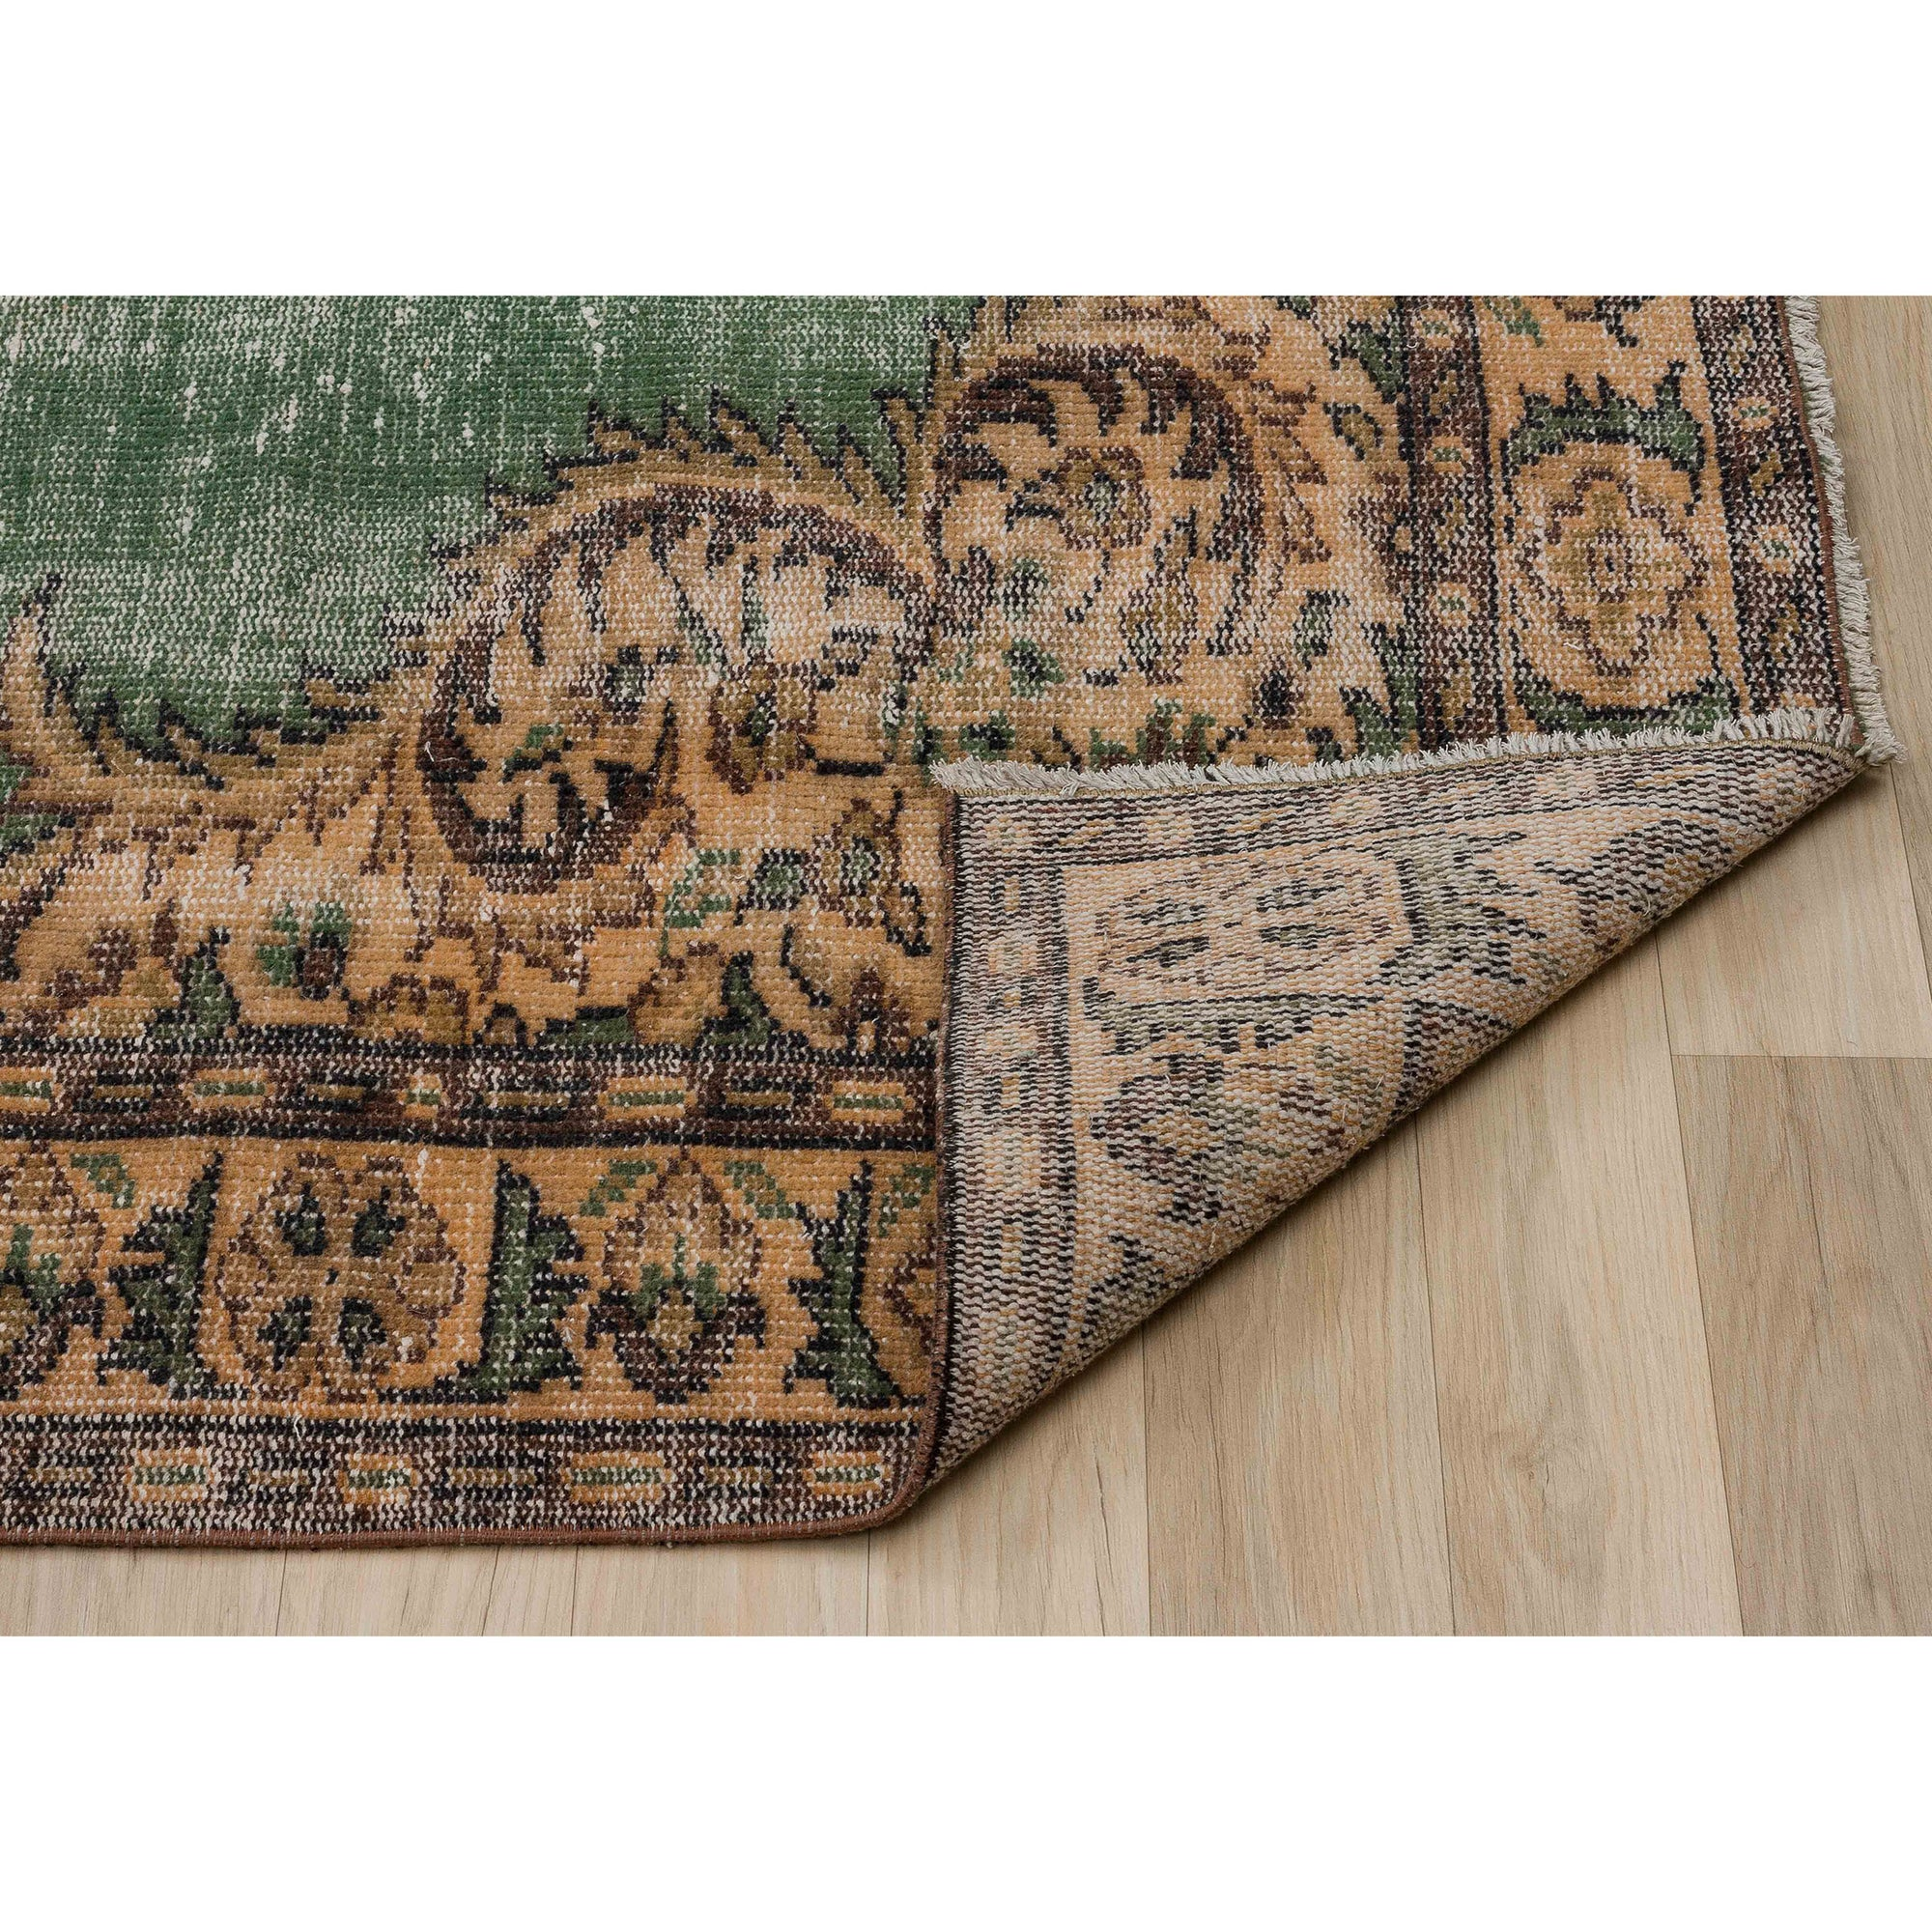 183 X 292 Anatolian Hand Knotted Carpet Vintage Style 60N2736 -  183 × 292 سجادة أناضولية معقودة يدويًا - Shop Online Furniture and Home Decor Store in Dubai, UAE at ebarza